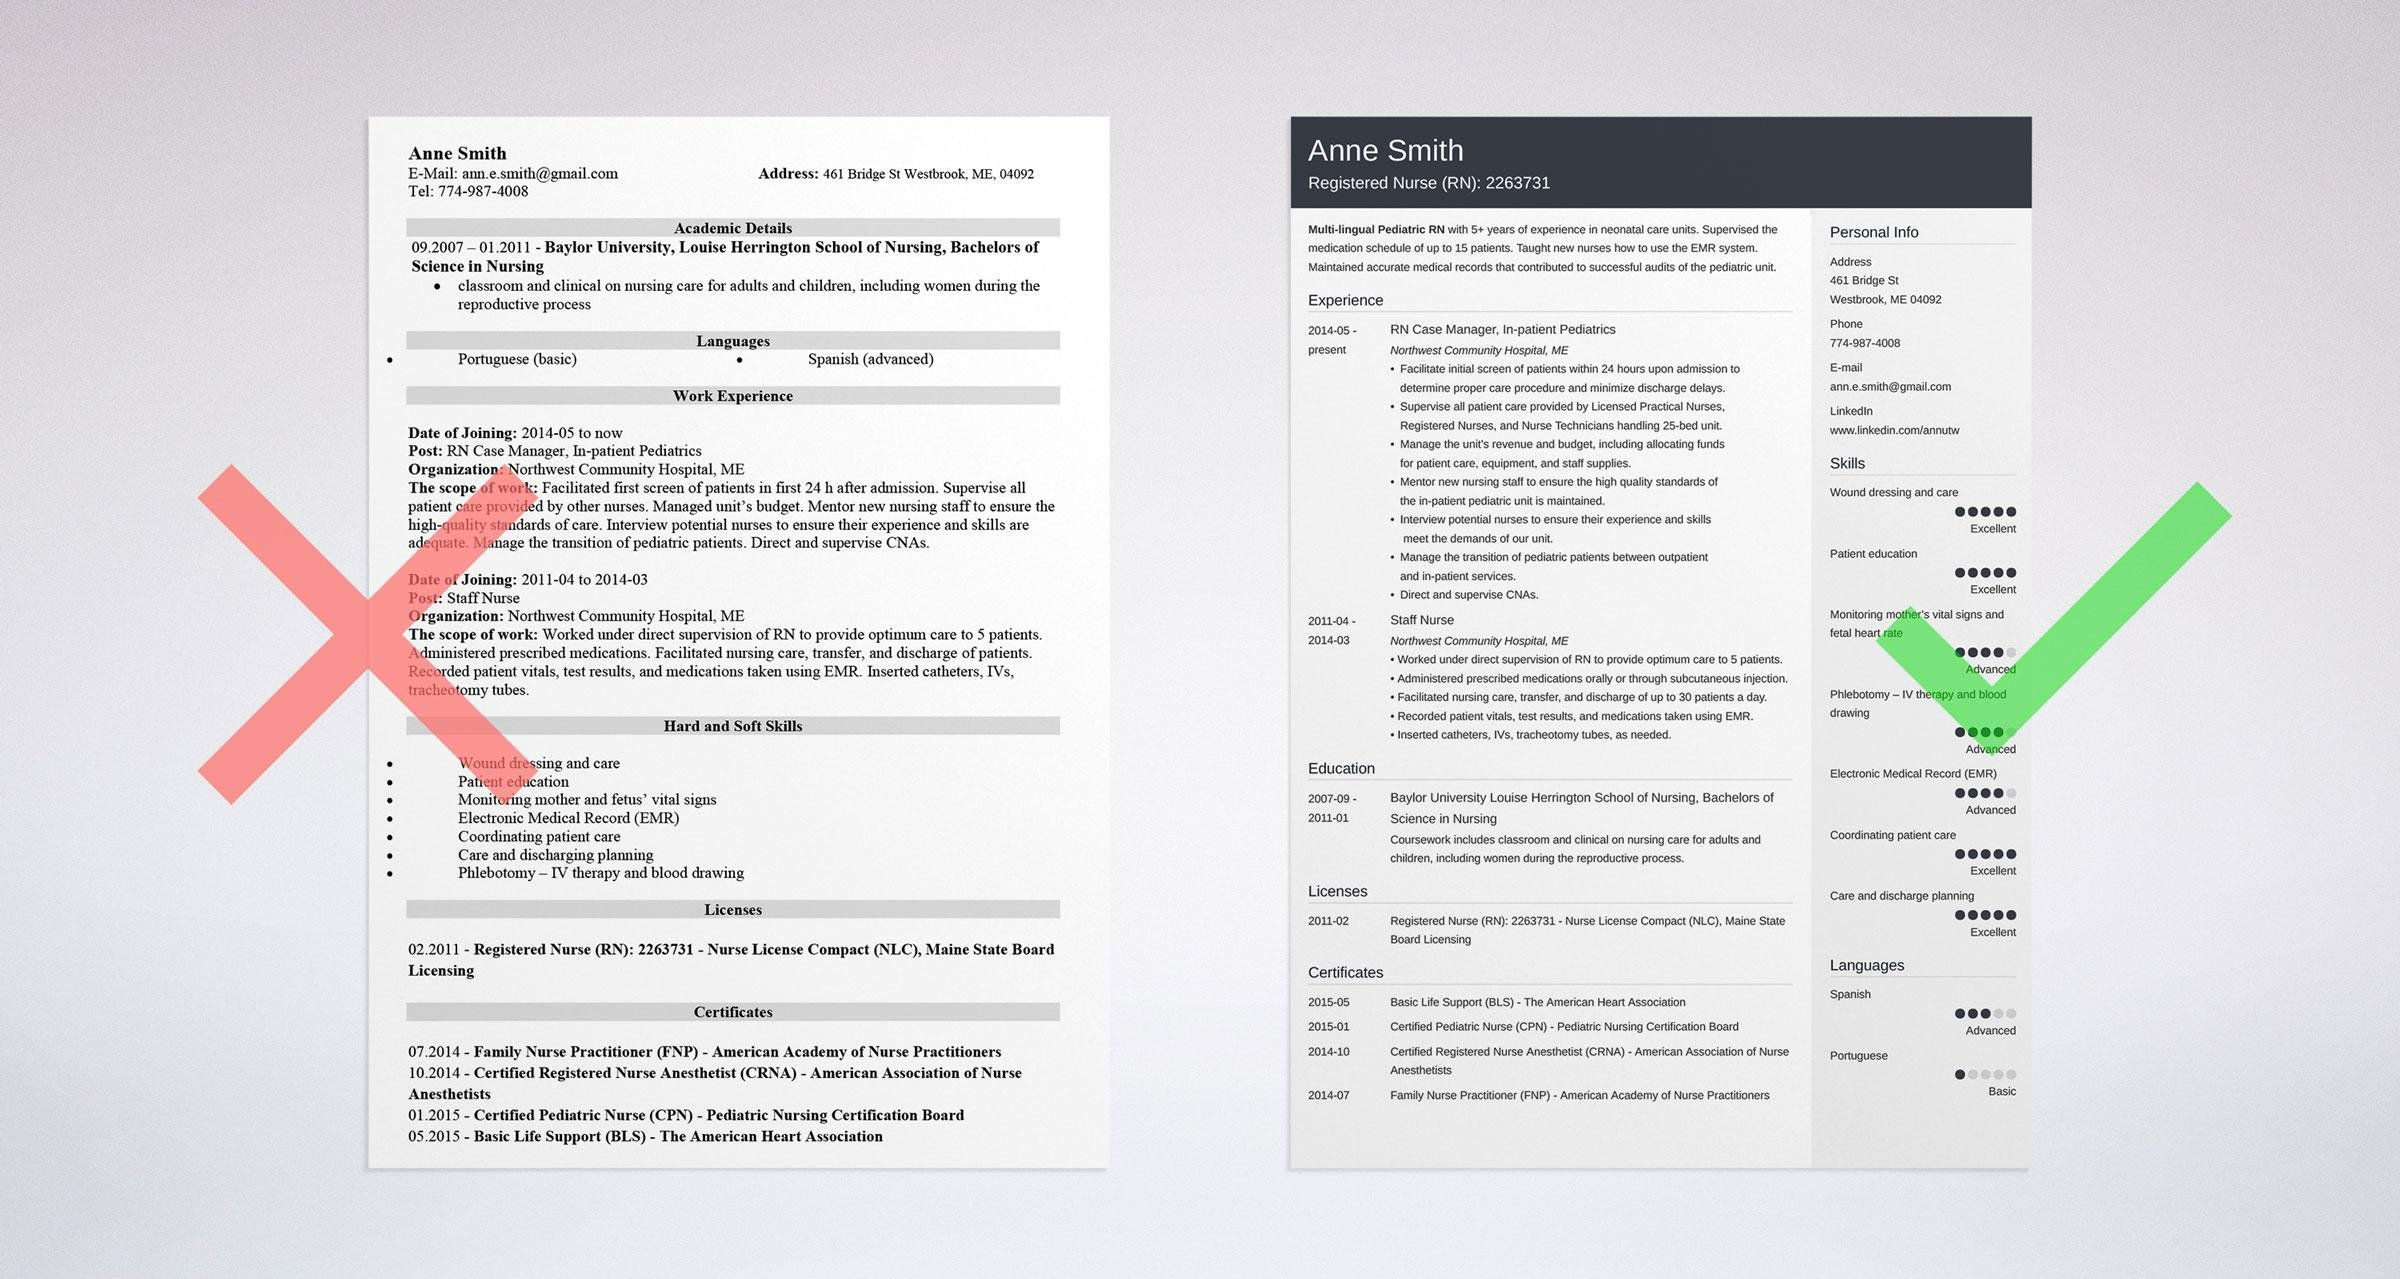 004 Singular Resume Template For Nurse Highest Quality  Sample Nursing Assistant With No Experience Rn' FreeFull